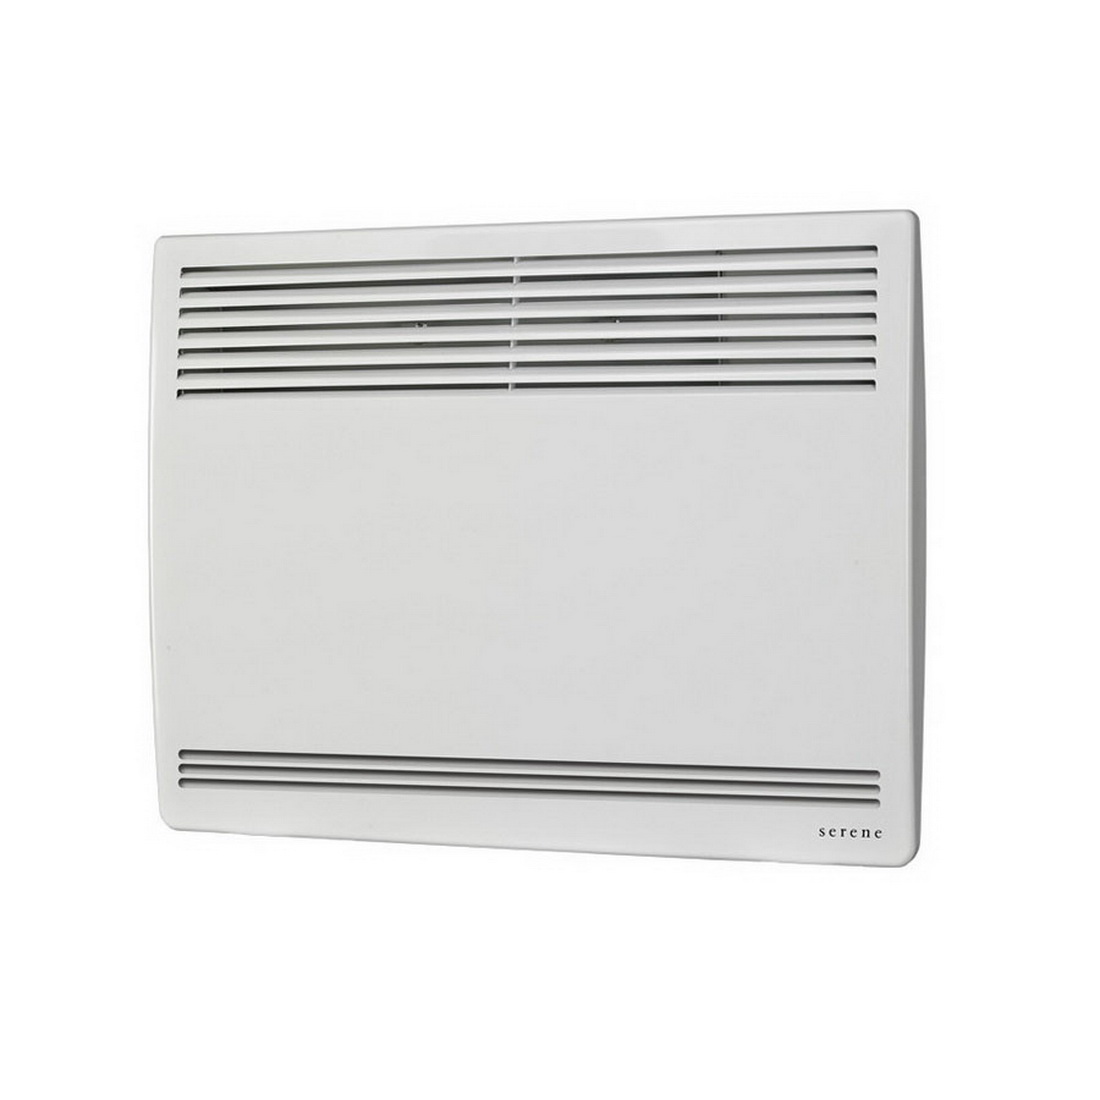 Intimo Electronic Zetto Panel Heater 1kW French White S2026